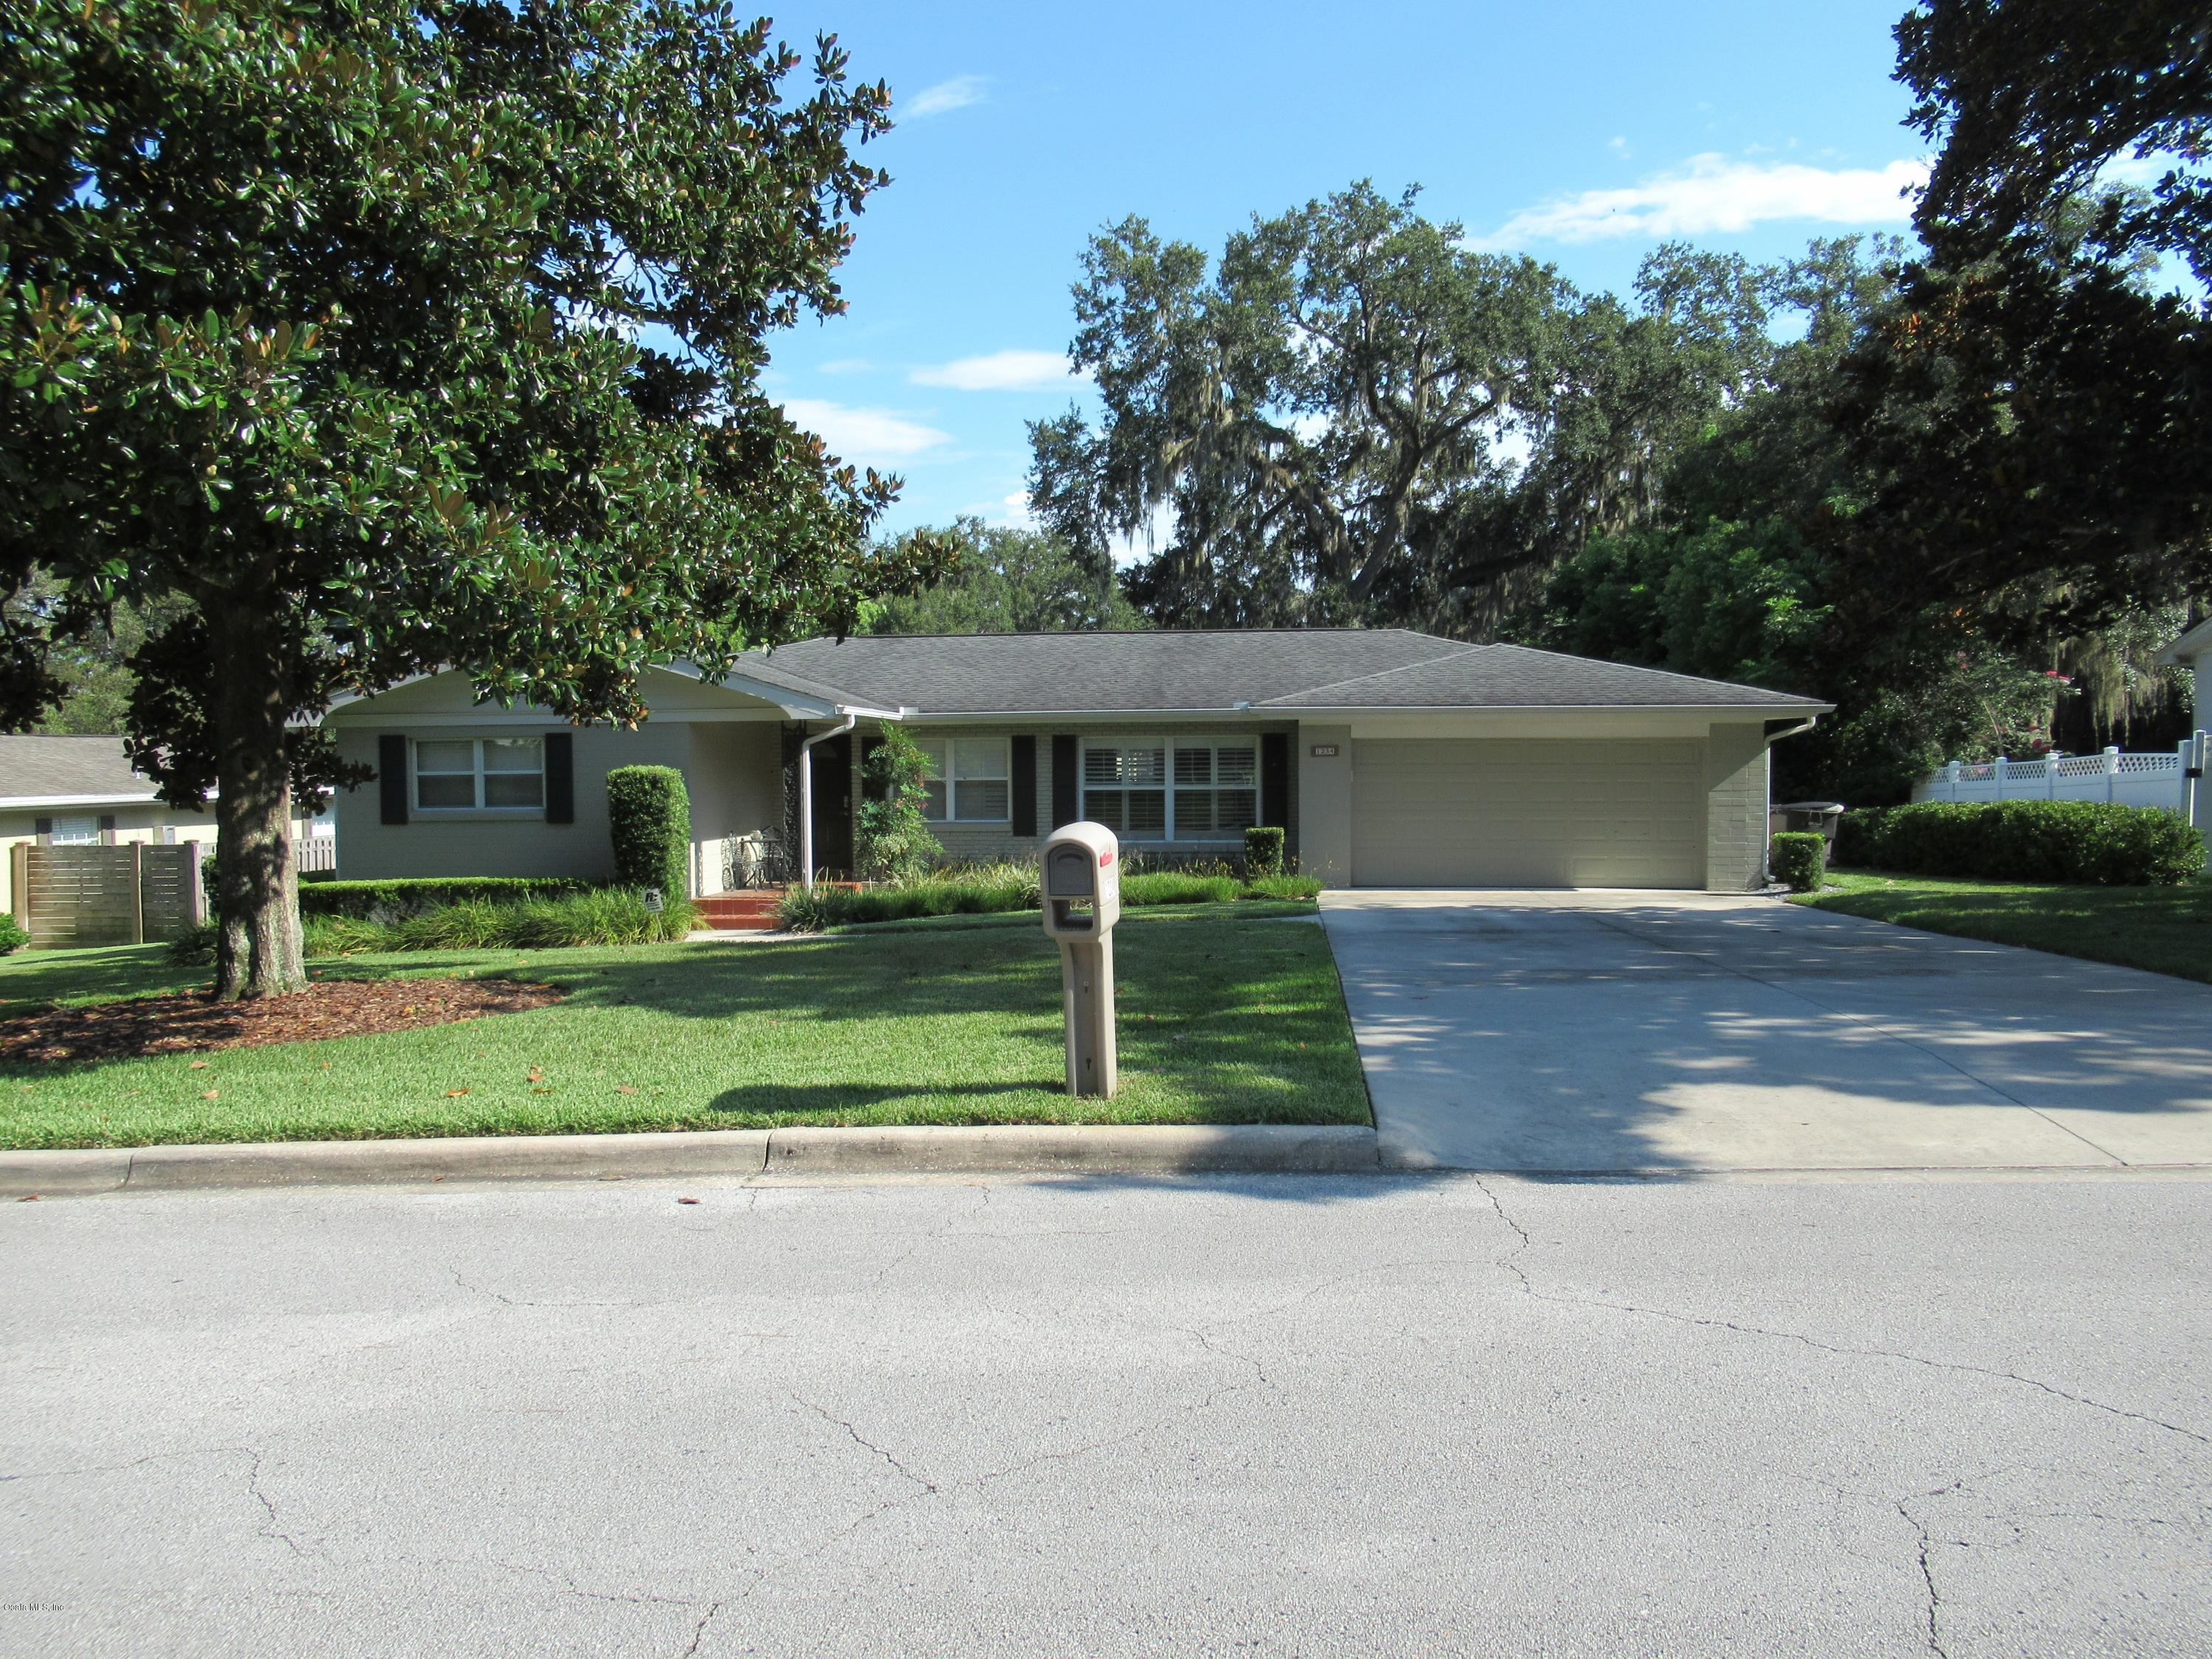 1234 SE 14TH STREET, OCALA, FL 34471